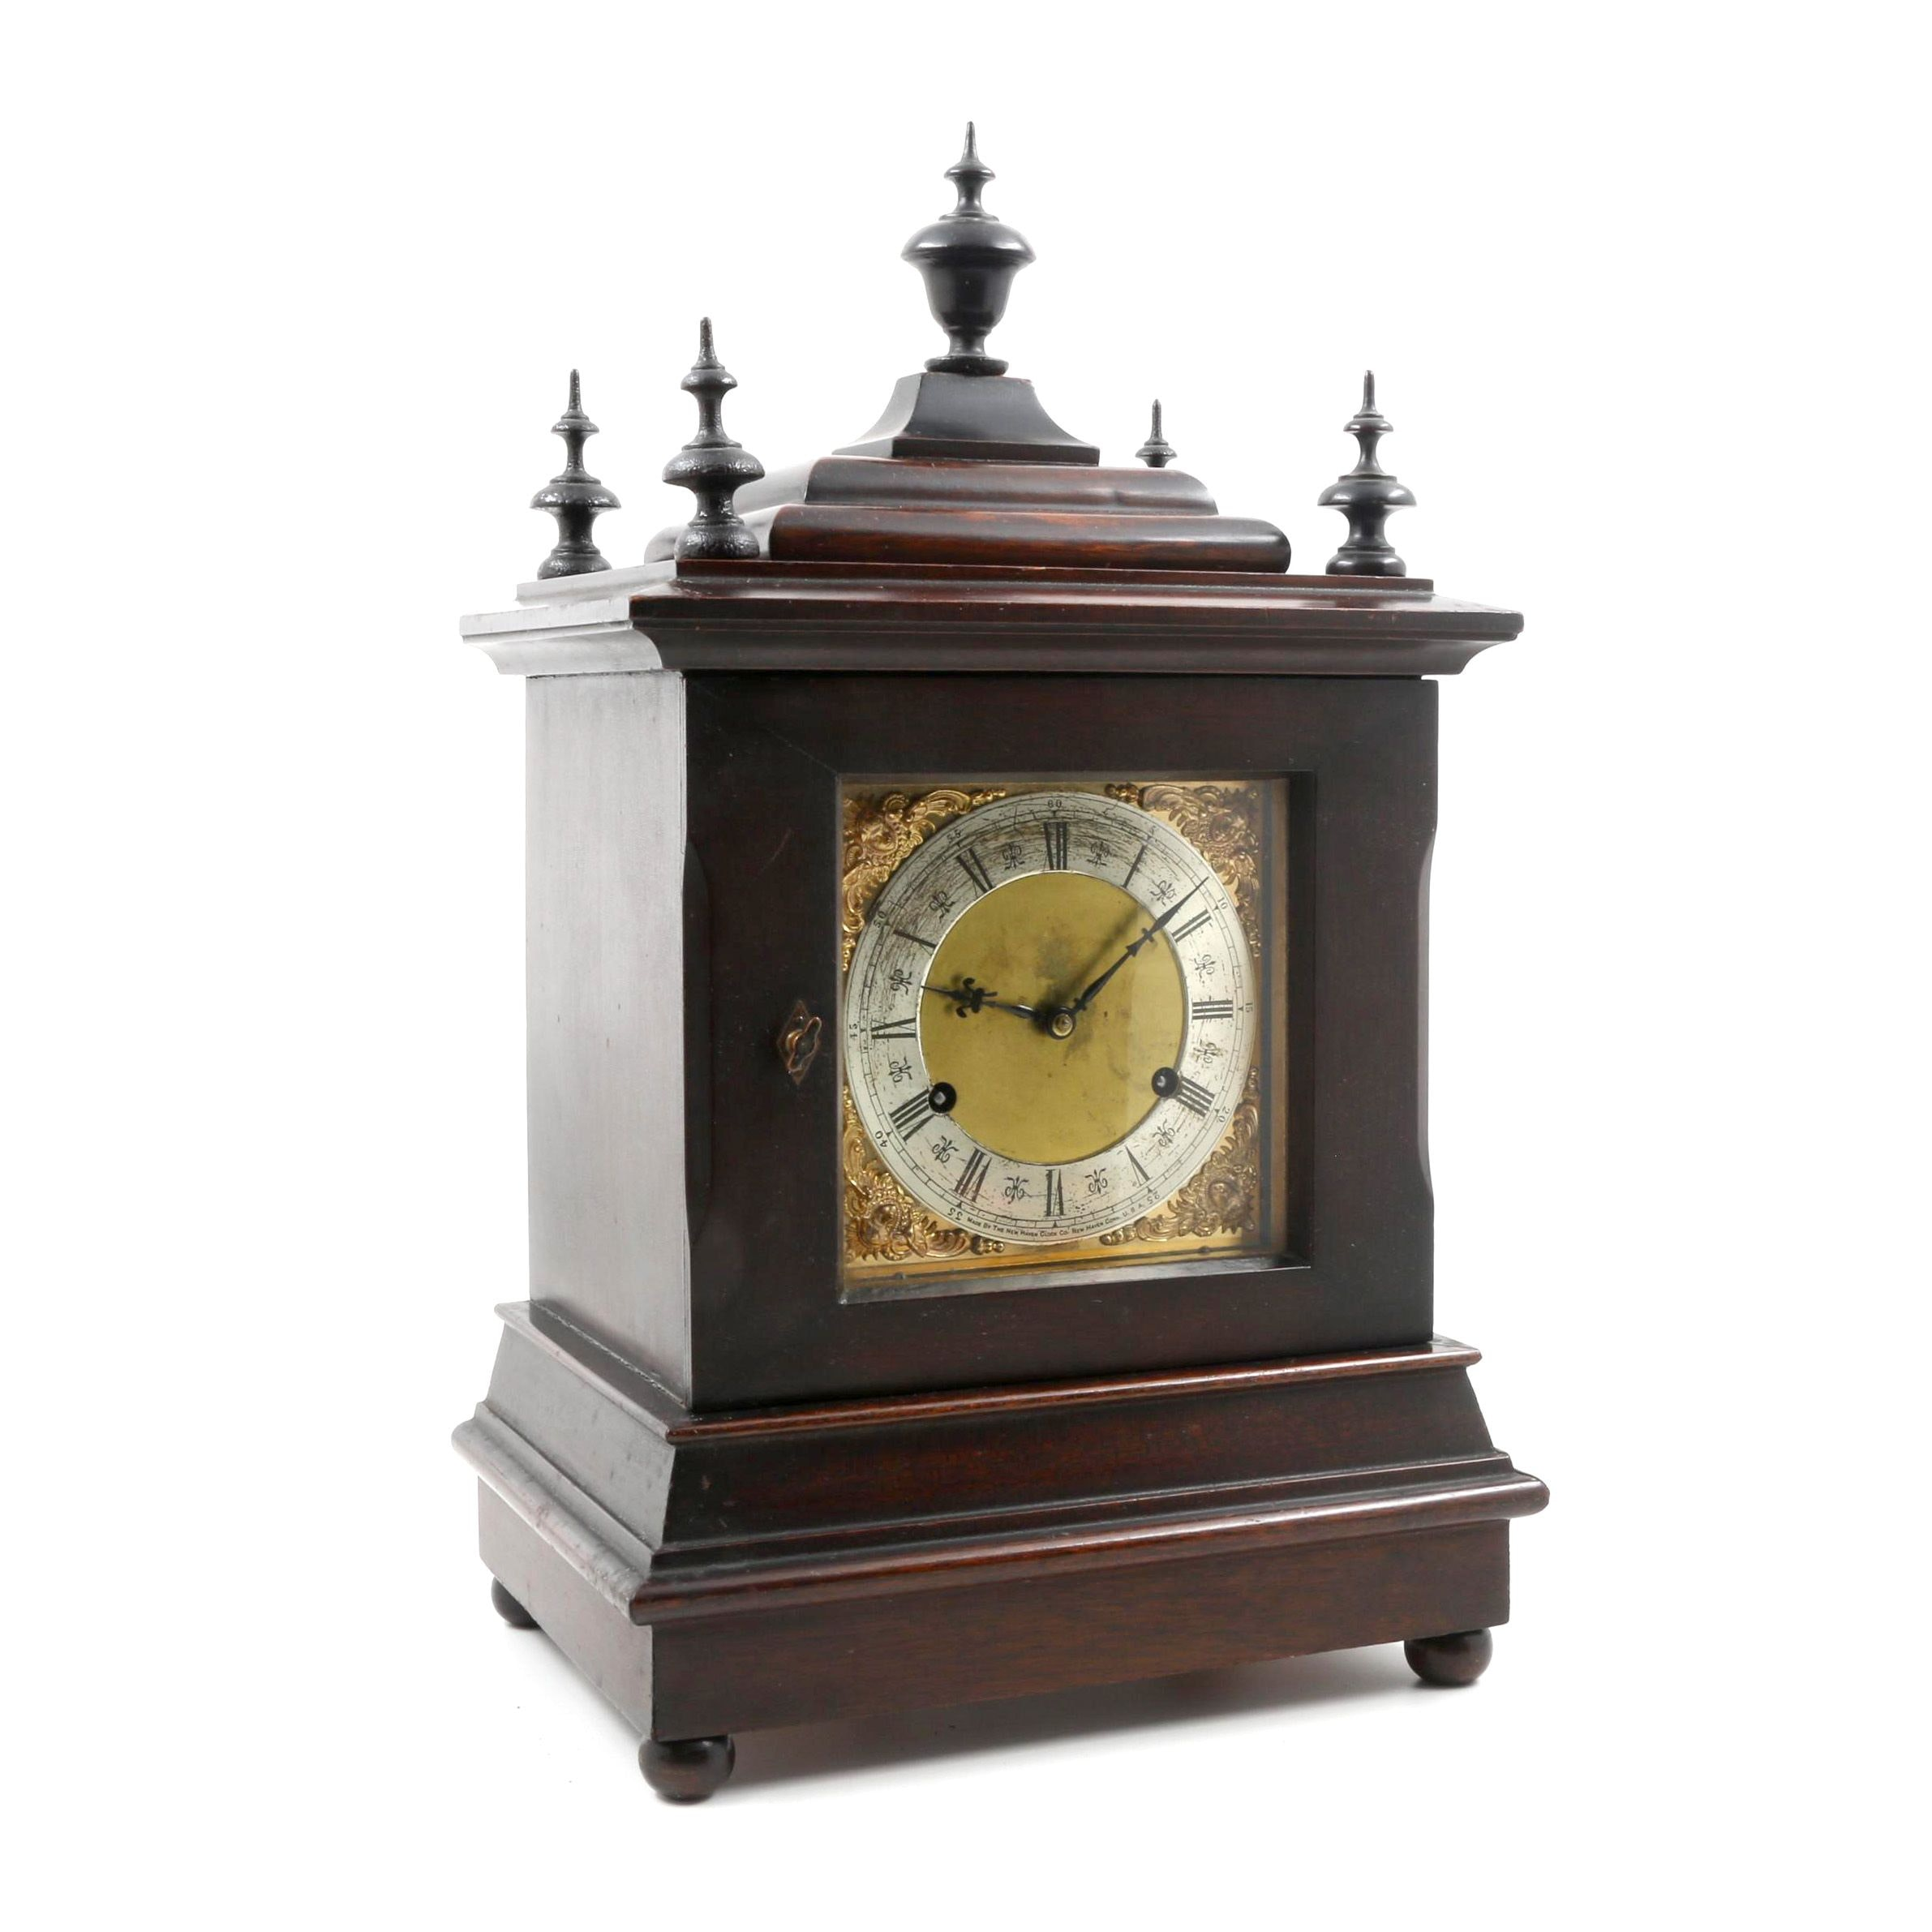 New Haven Westminster Chime Clock No. 4